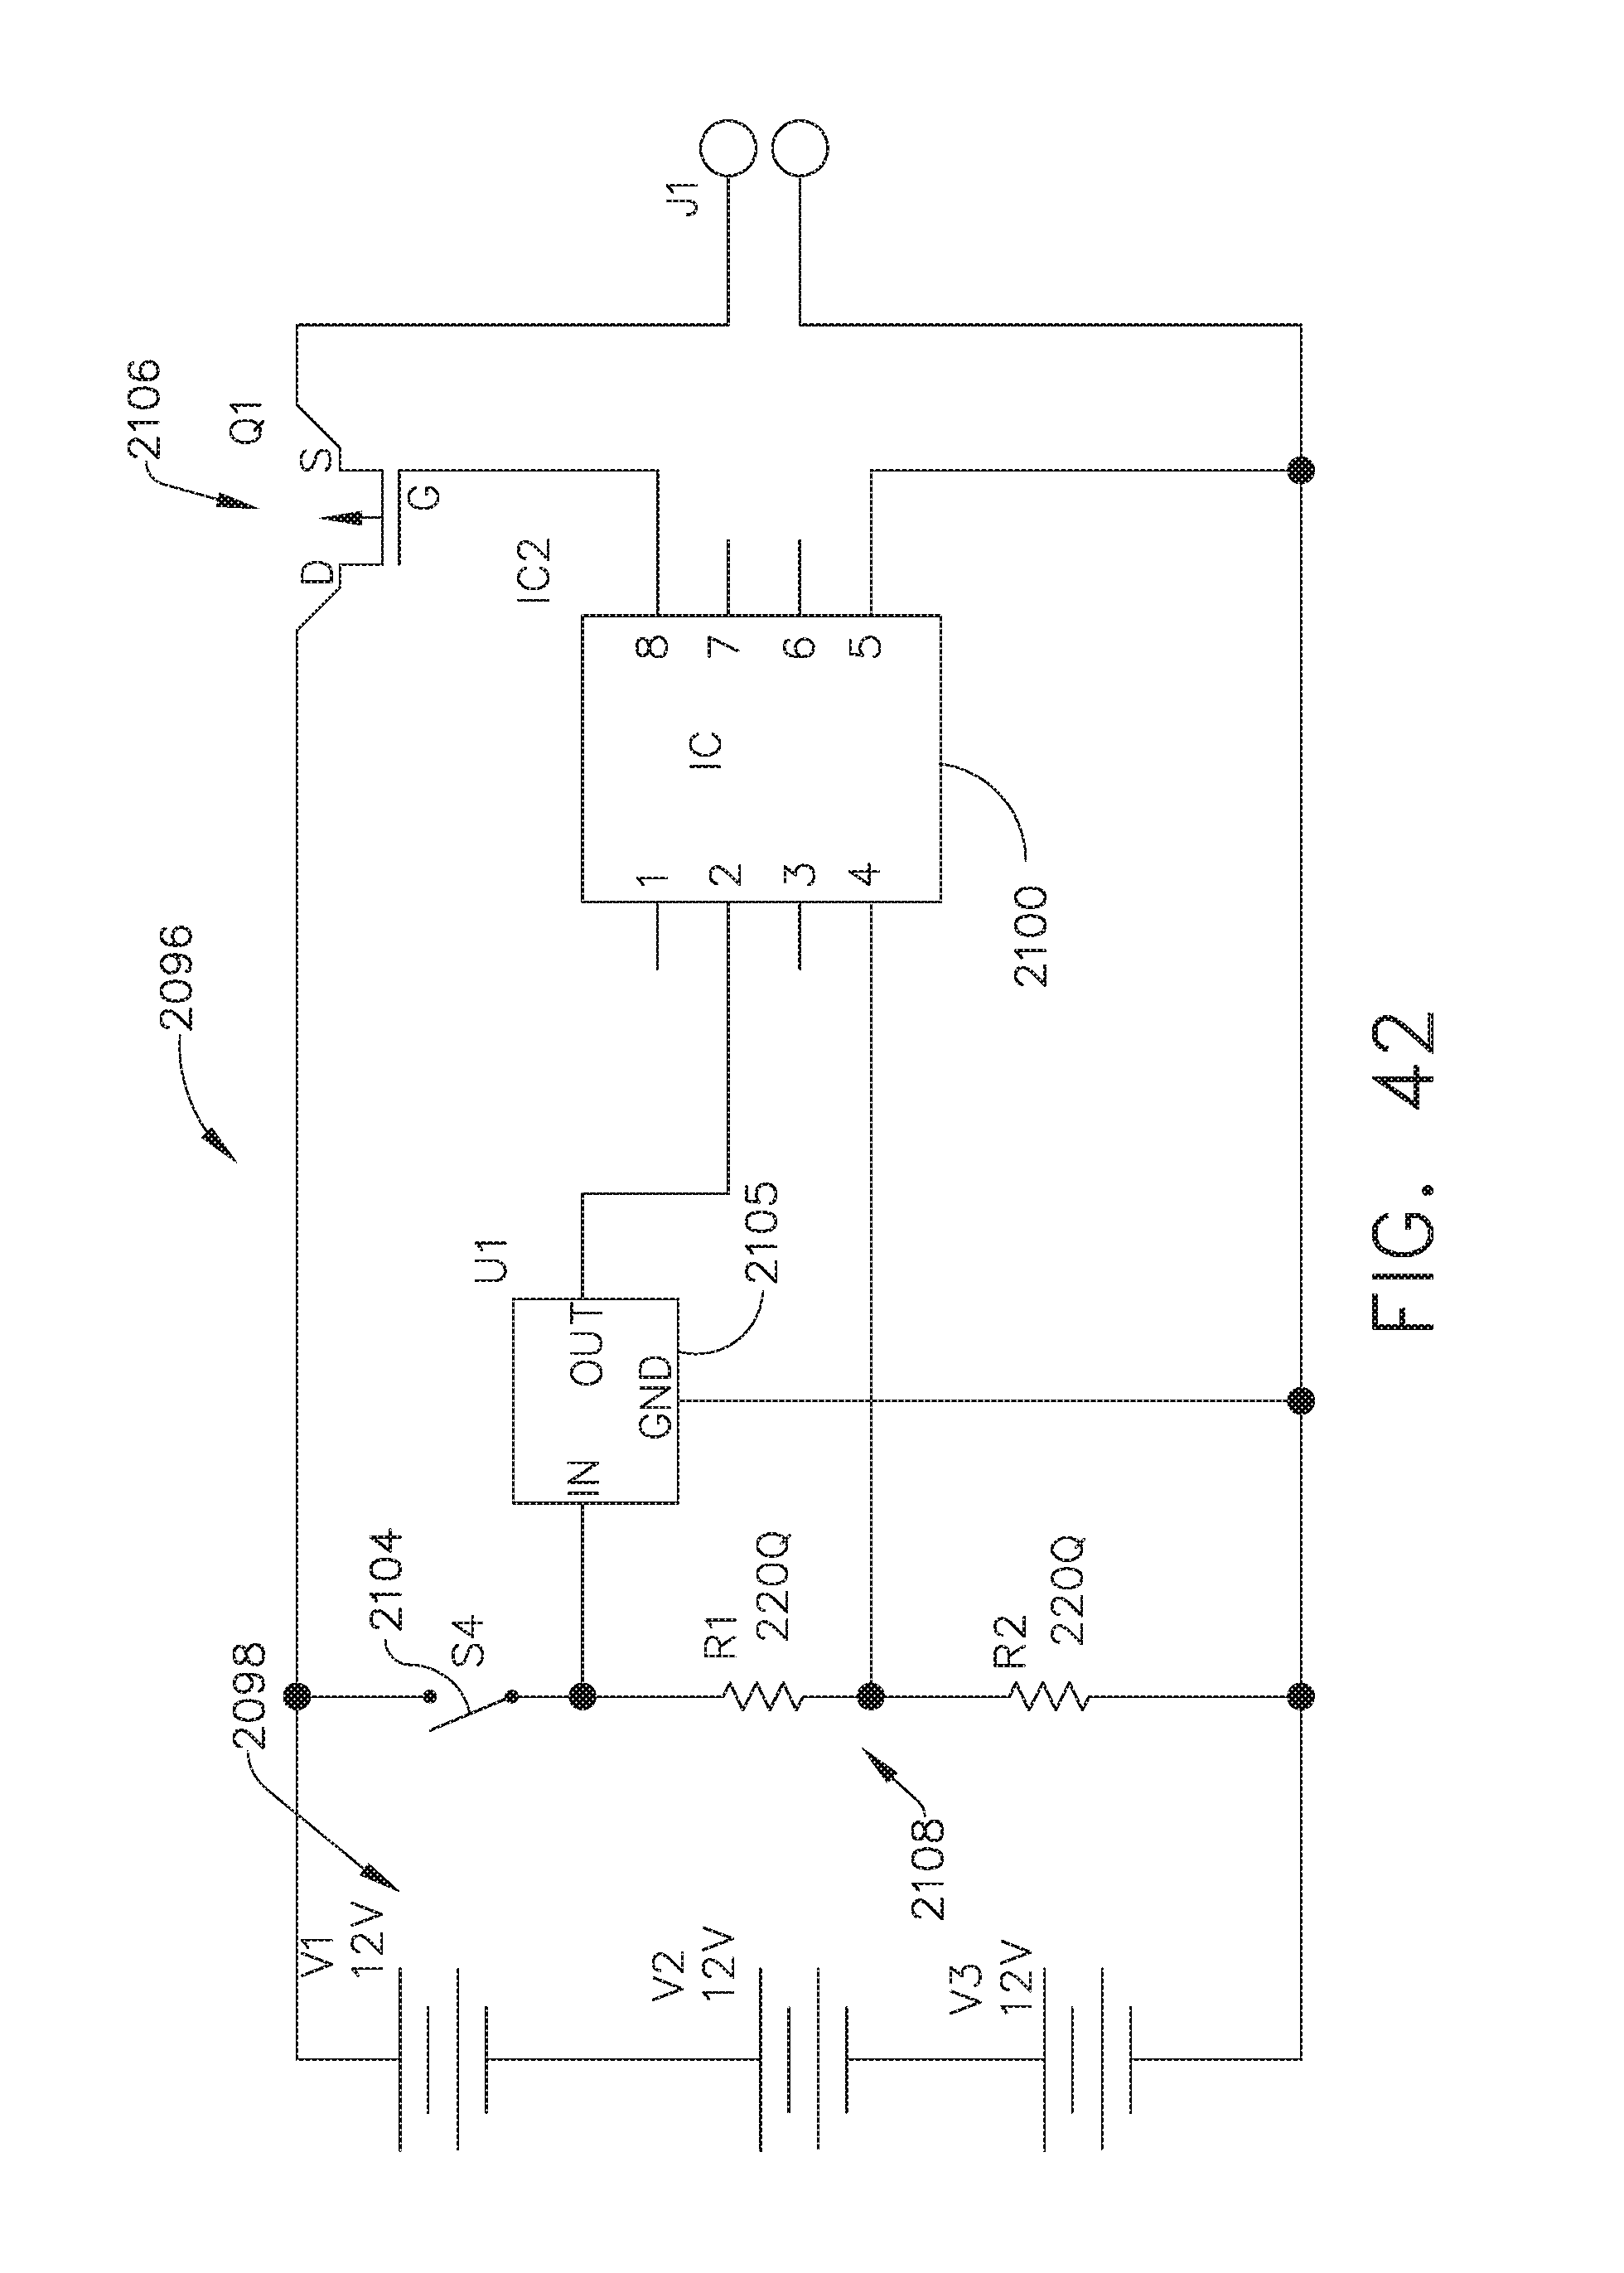 Us9743929b2 Modular Powered Surgical Instrument With Detachable 12 Volt Latching Relay Diagram Likewise Starter Kill Shaft Assemblies Google Patents